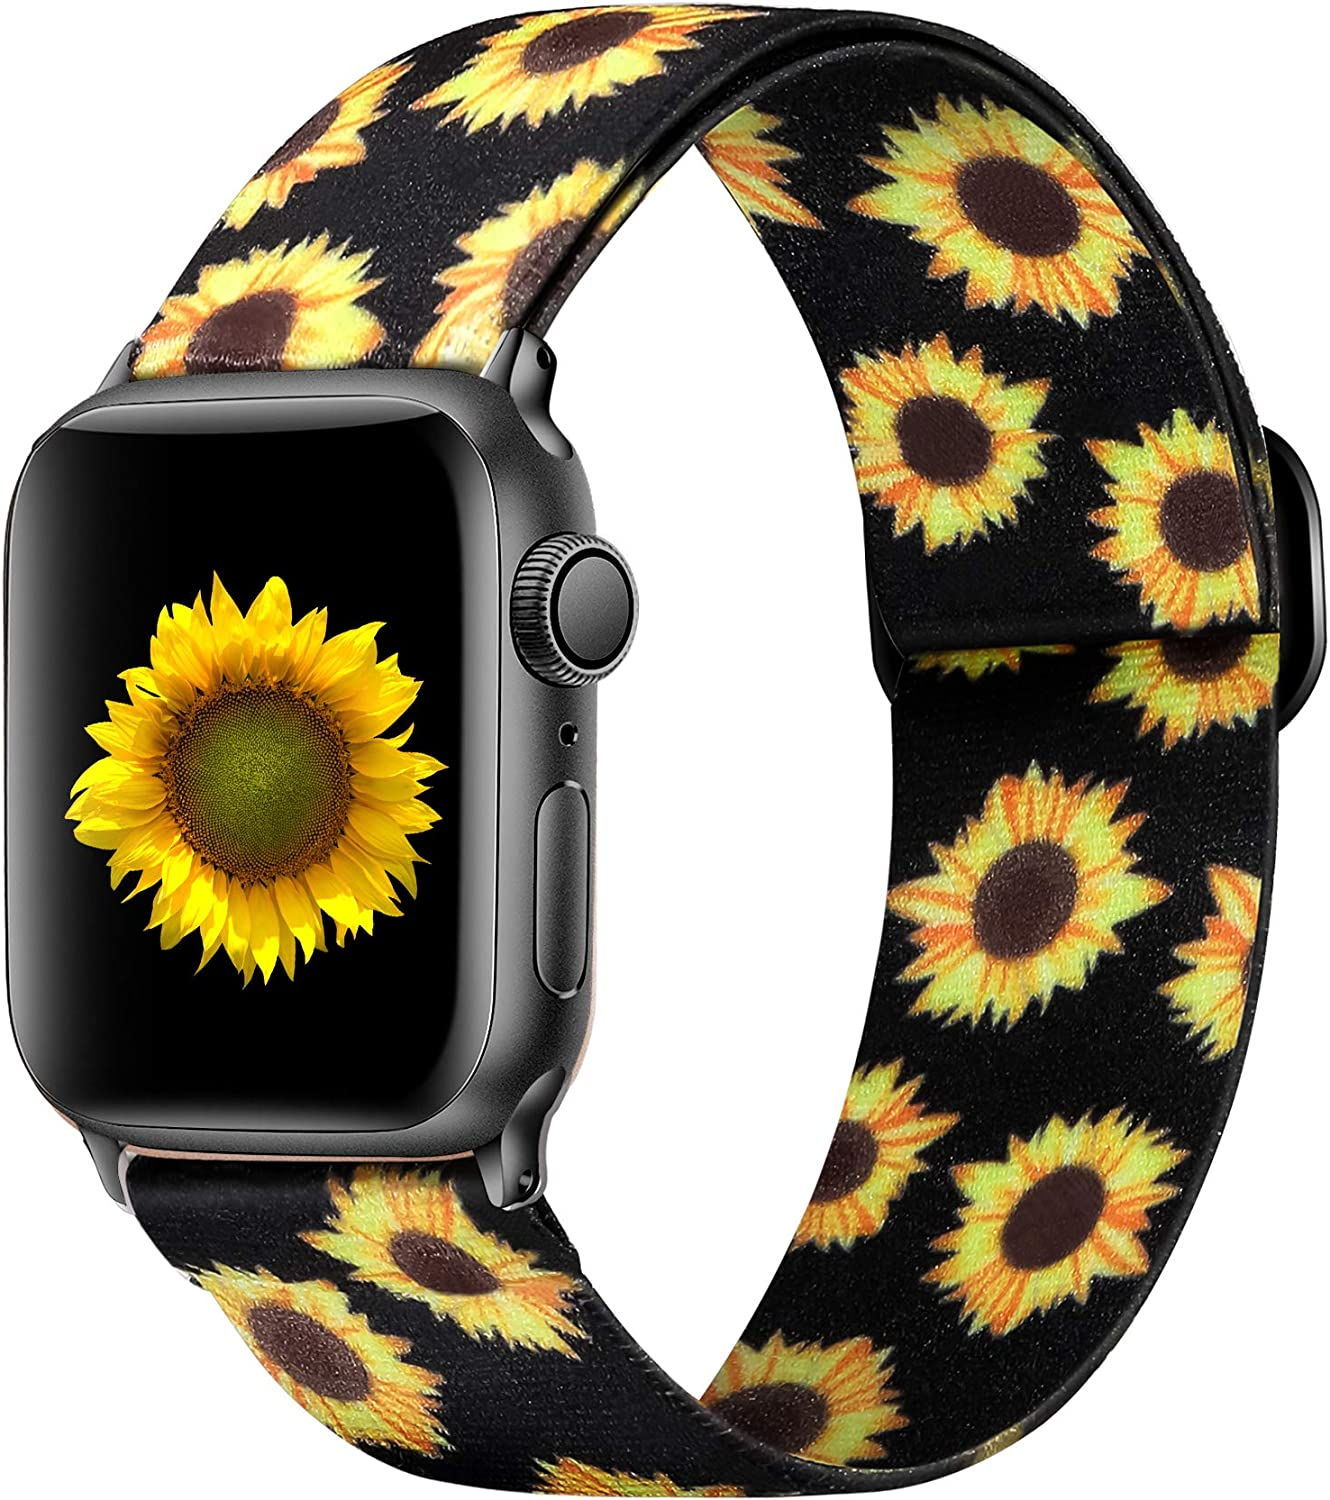 Ouwegaga Adjustable Elastic Bands Compatible for Apple Watch Band 40mm 38mm iWatch SE and Series 6 5 4 3 2 1 FashionCute Soft Stretchy Loop Woven Fabric Wristband for Women Men Black Sunflower